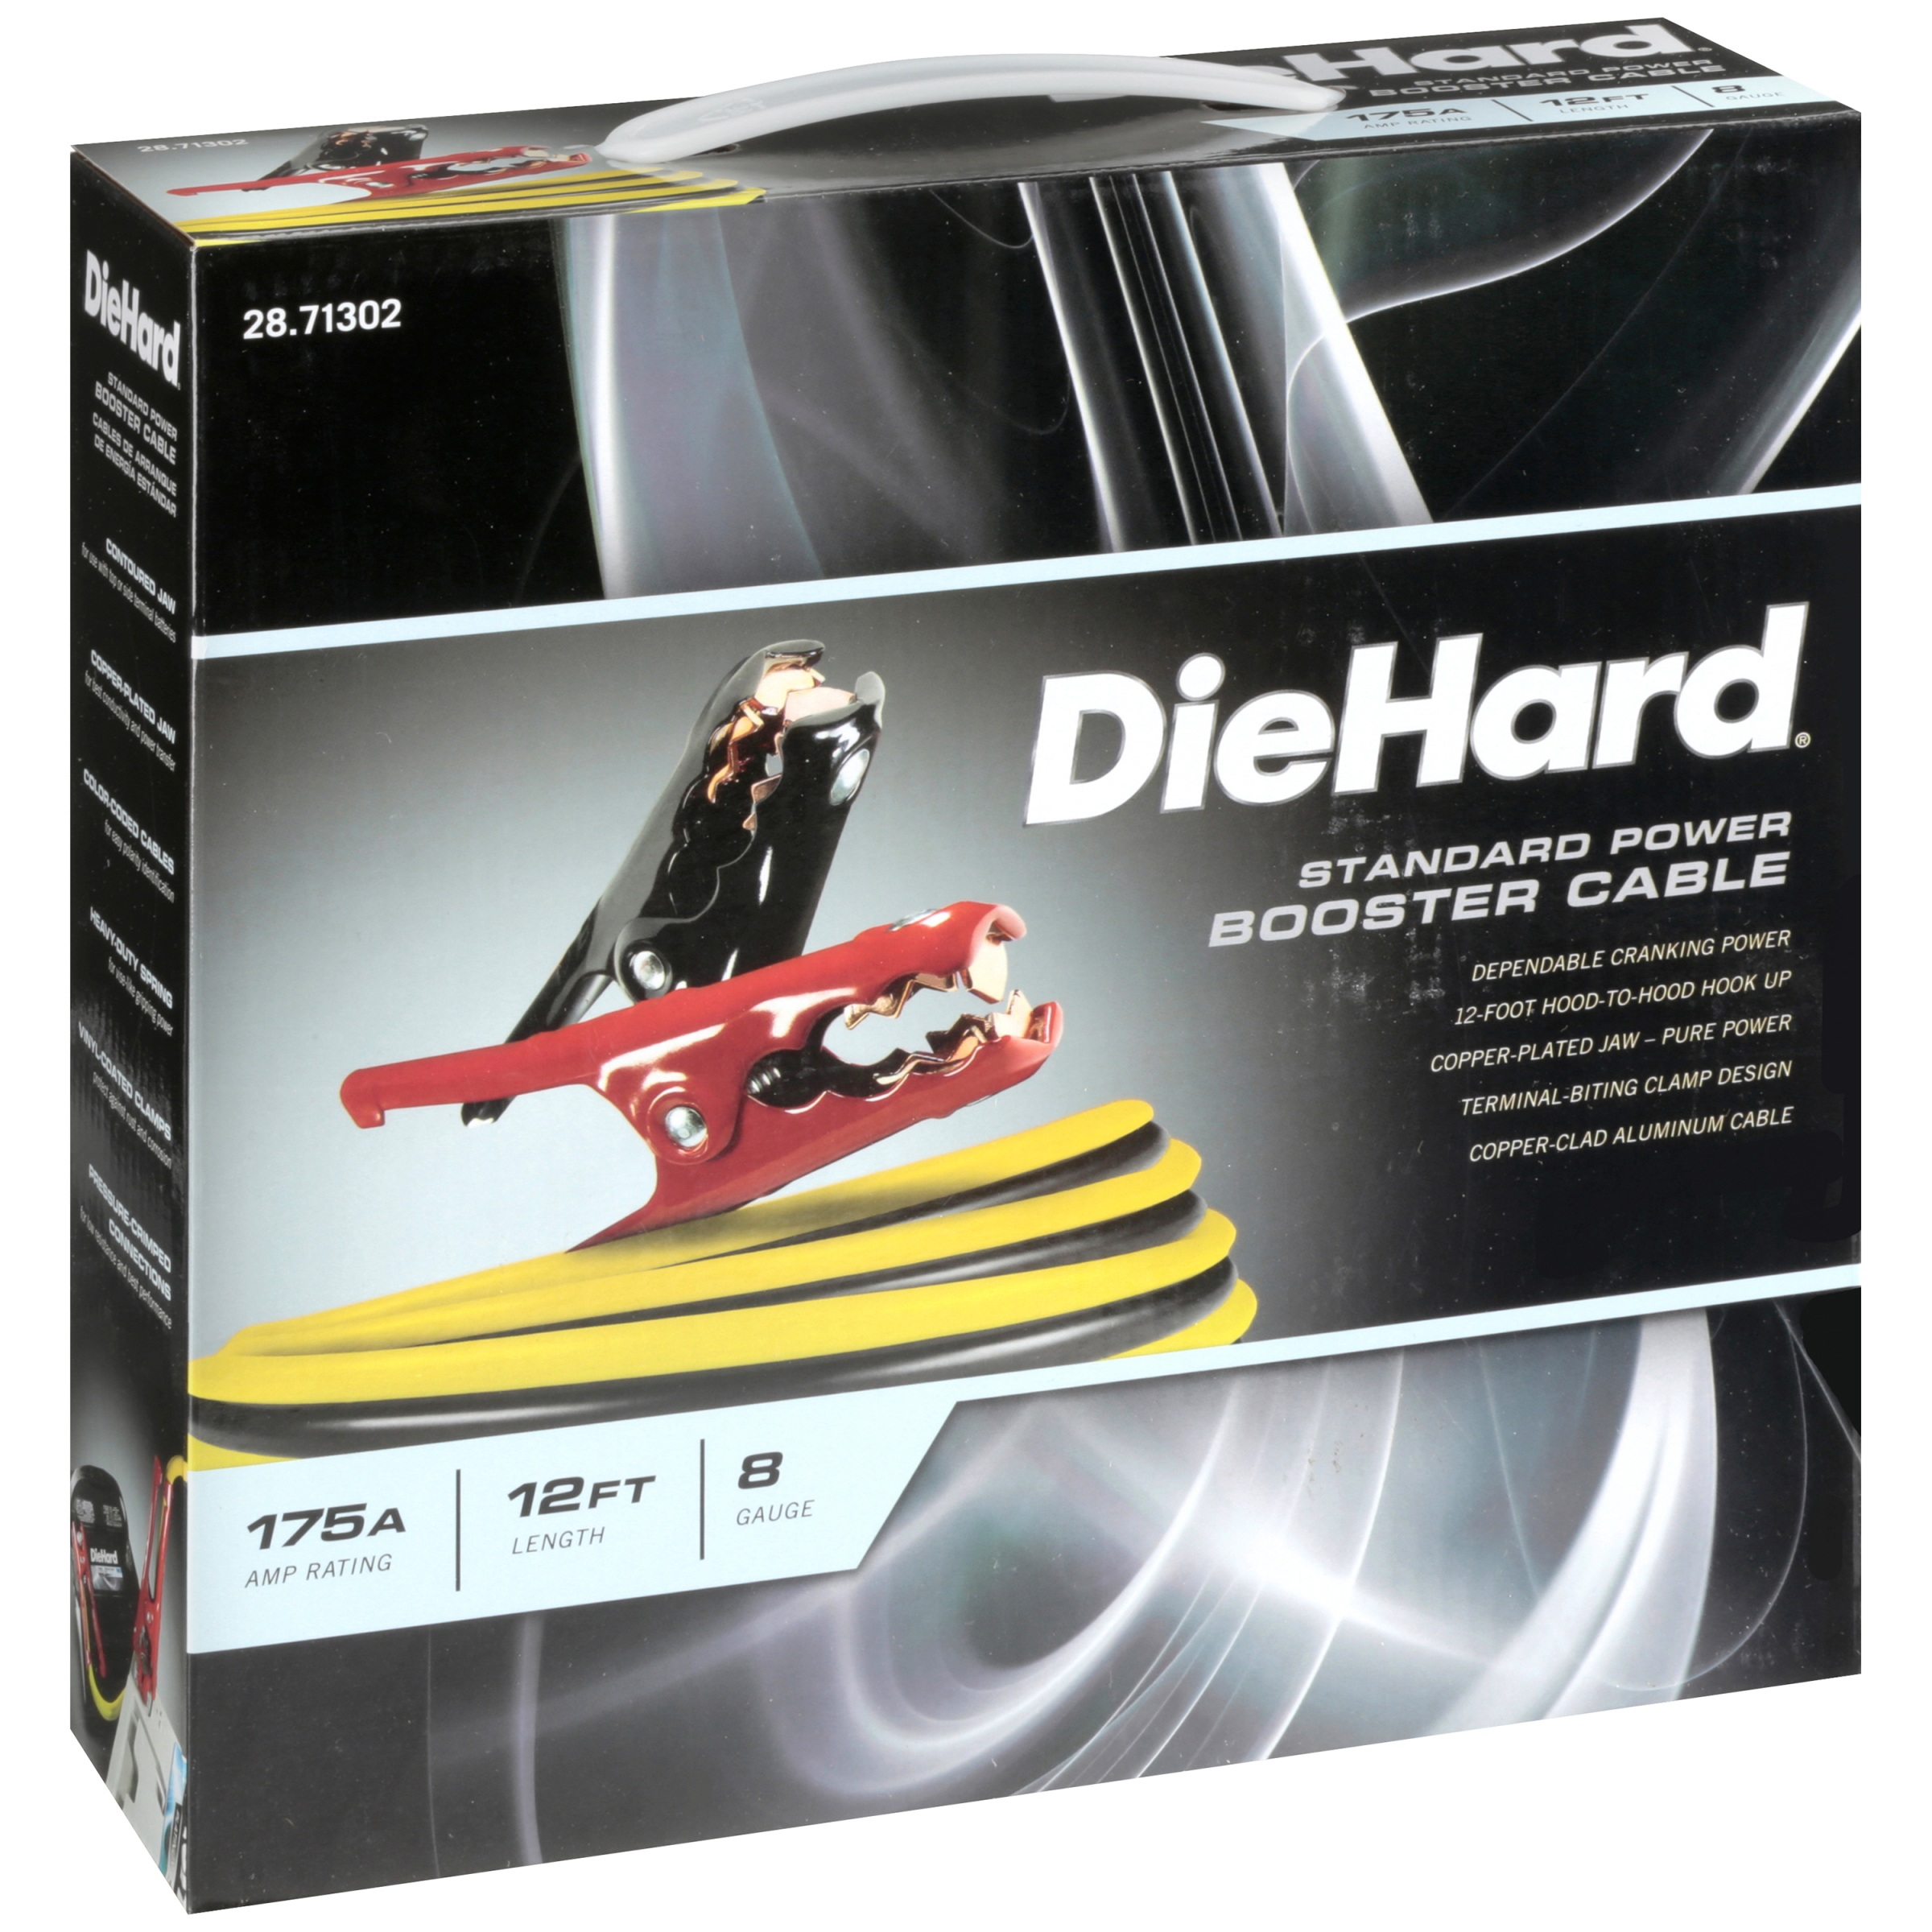 DieHard® Standard Power Booster Cable - Walmart.com